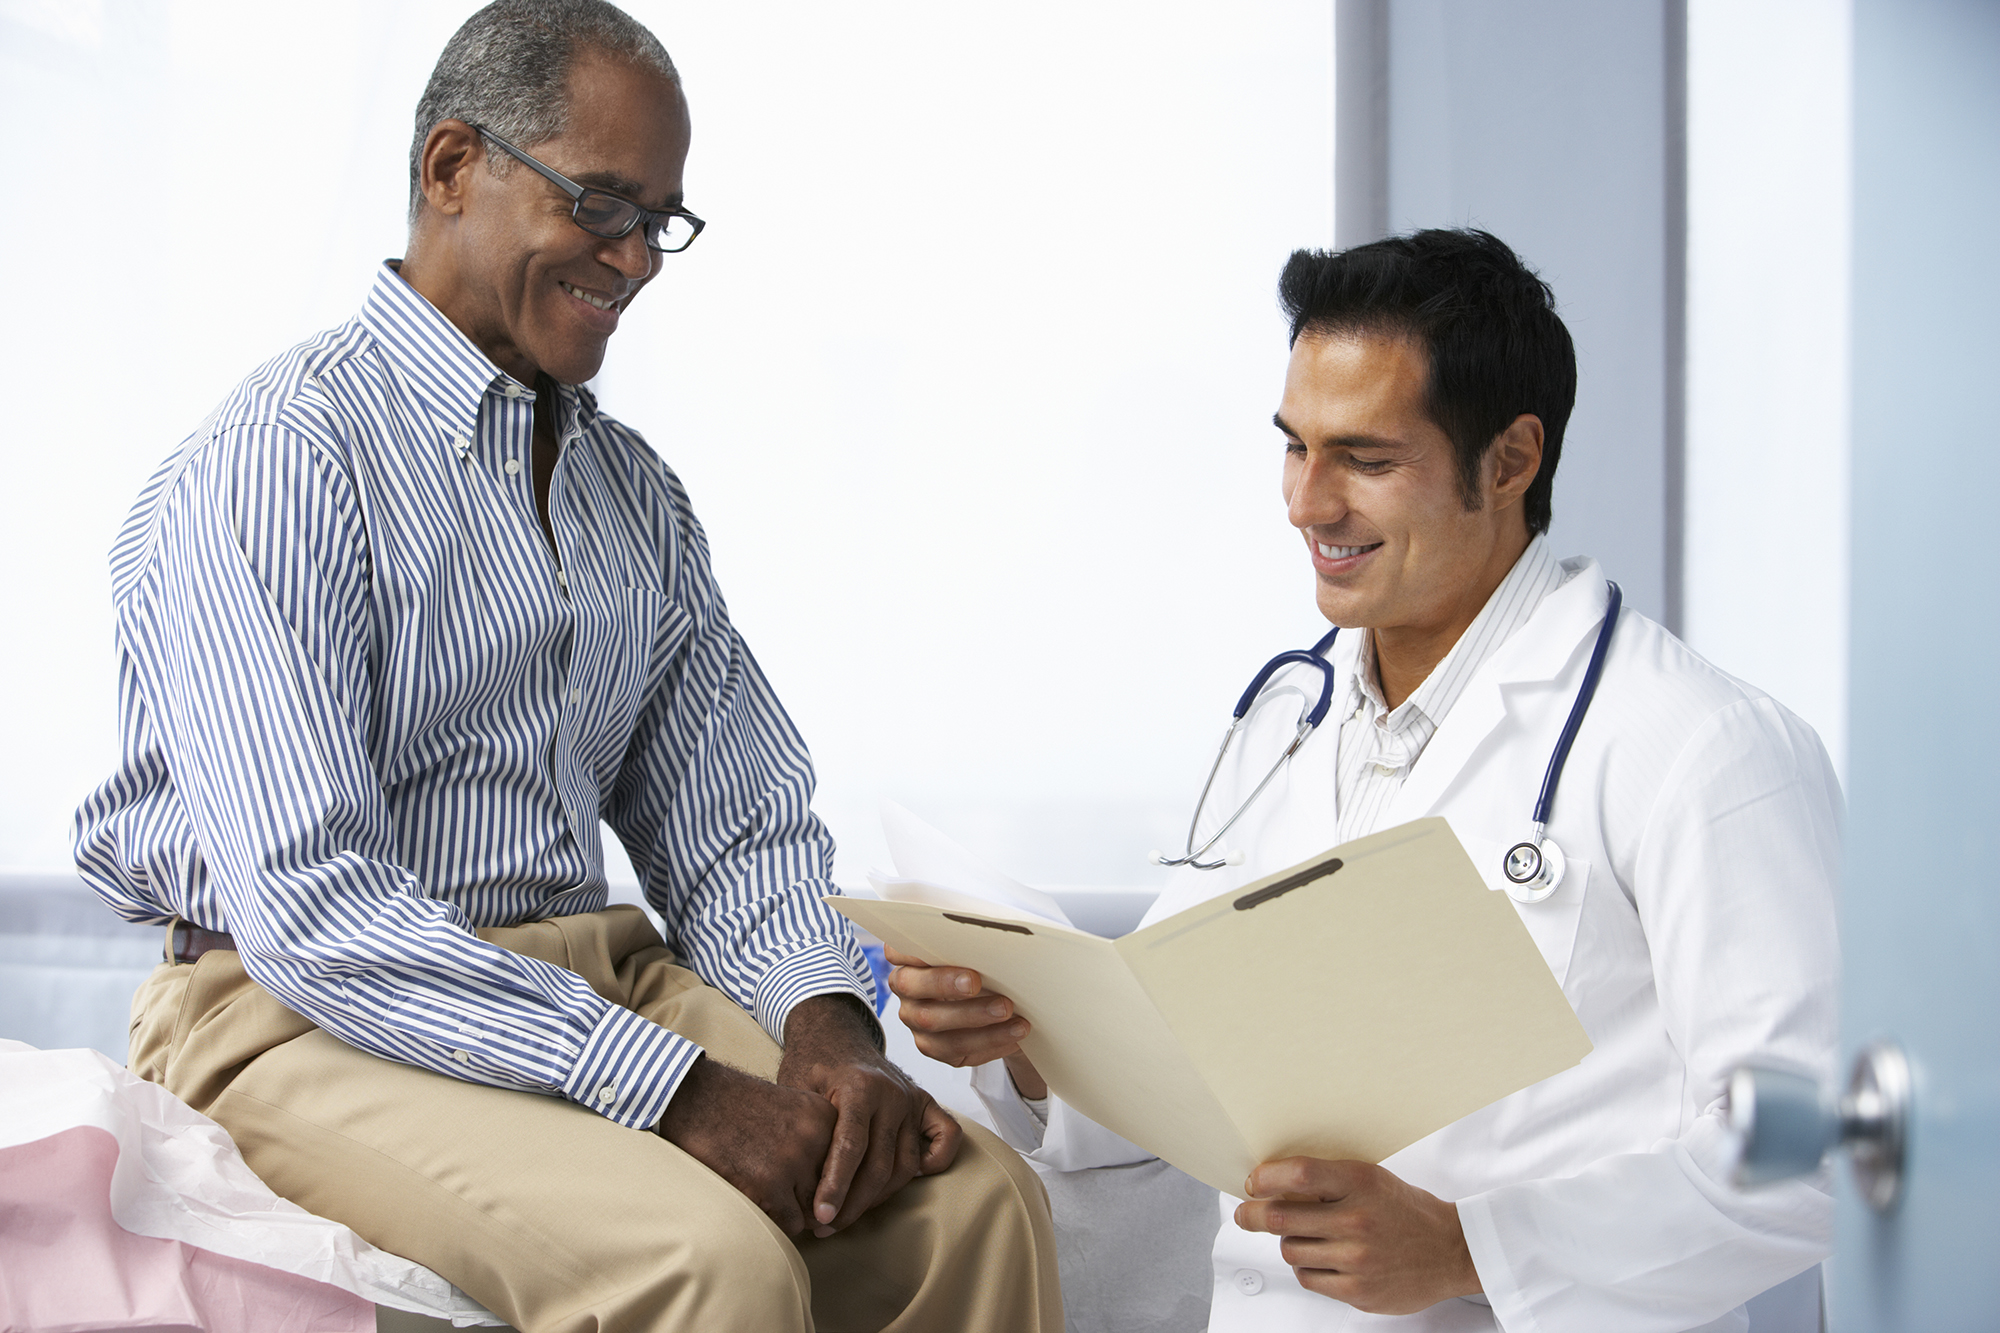 6 Questions Every Man Should Ask His Doctor